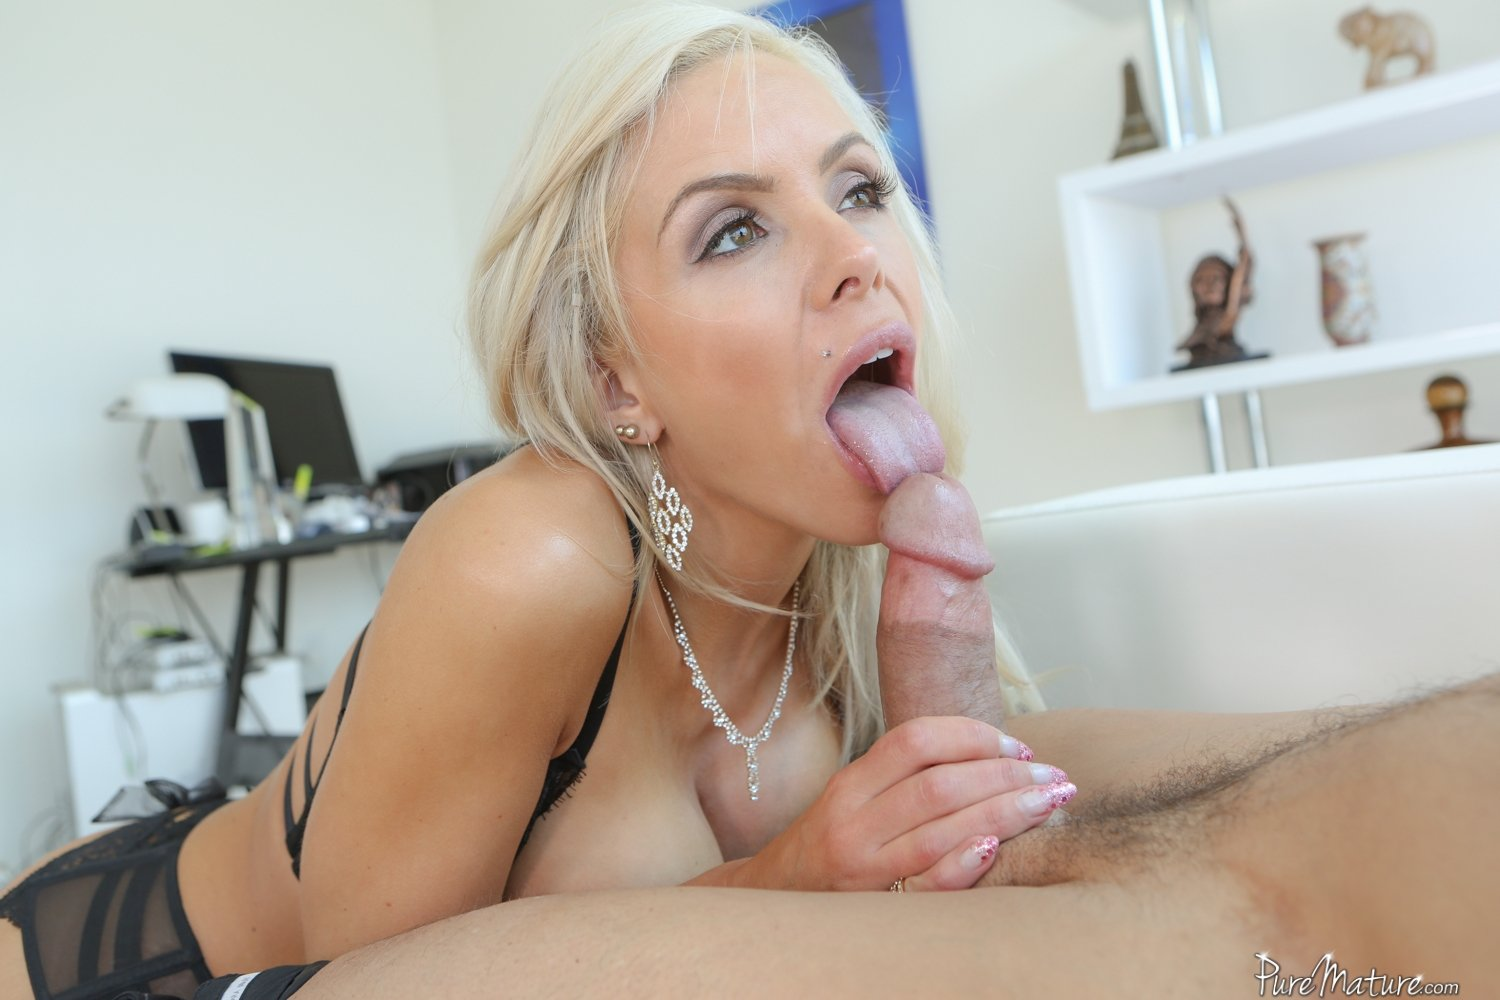 Free amateur videos of first time swingers